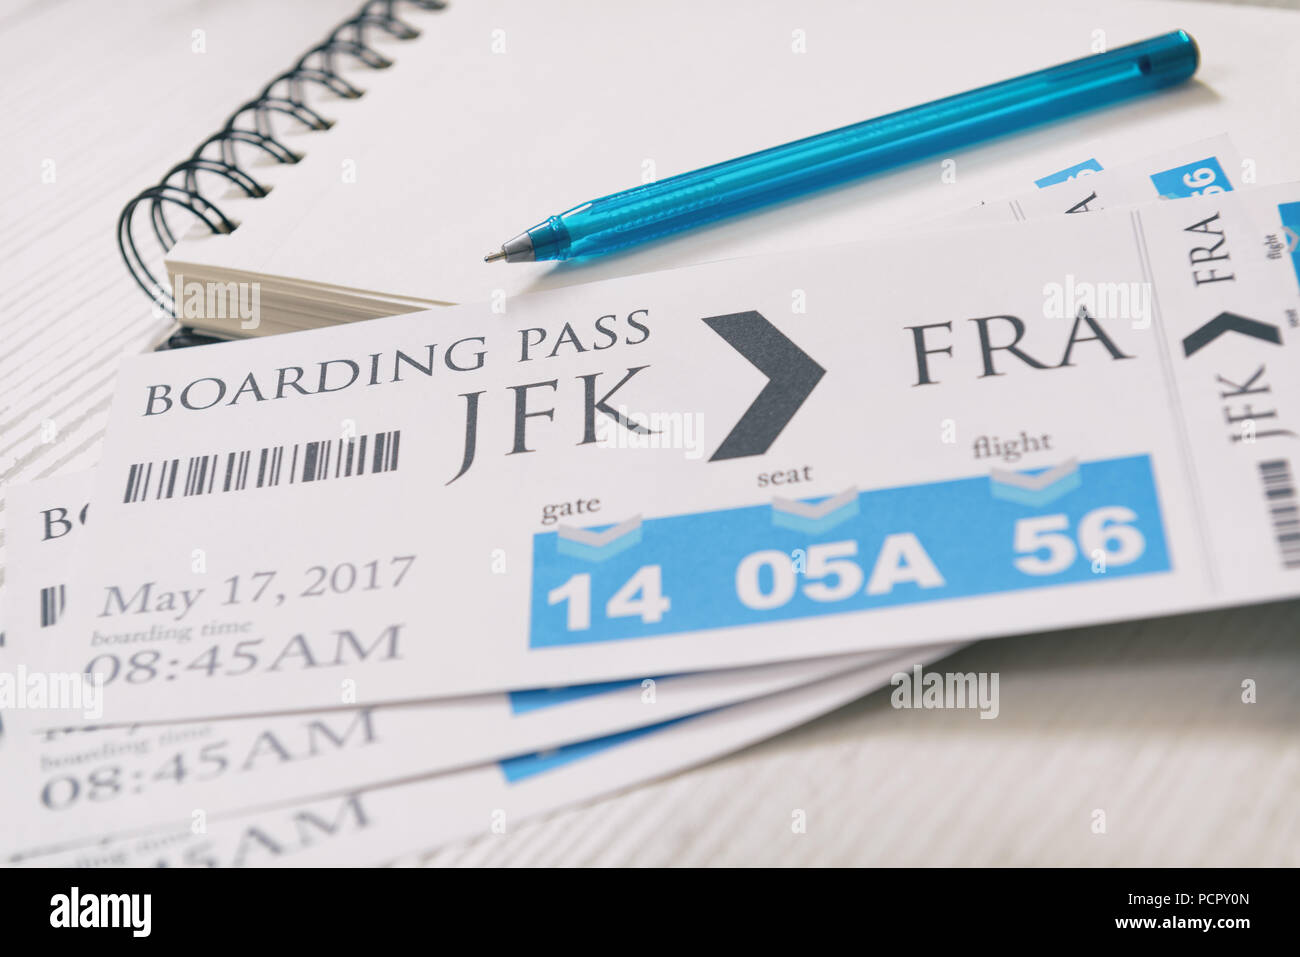 how to get boarding pass online for jet airways